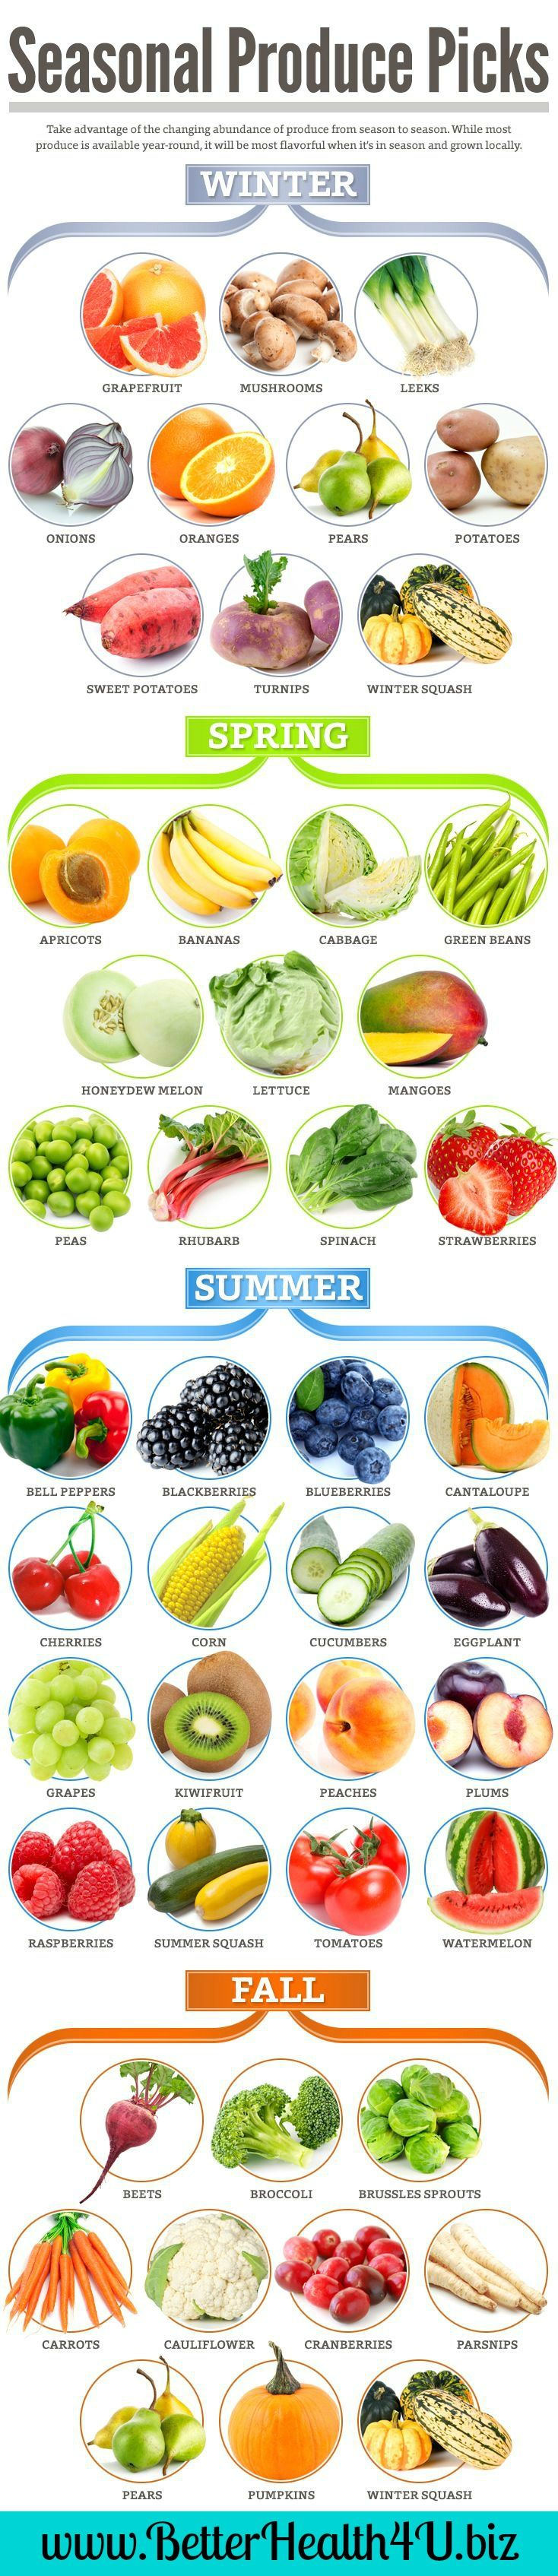 See what is freshest for that season, get additional fruits and vegetables with JP learn more at www.BetterHealth4U.biz